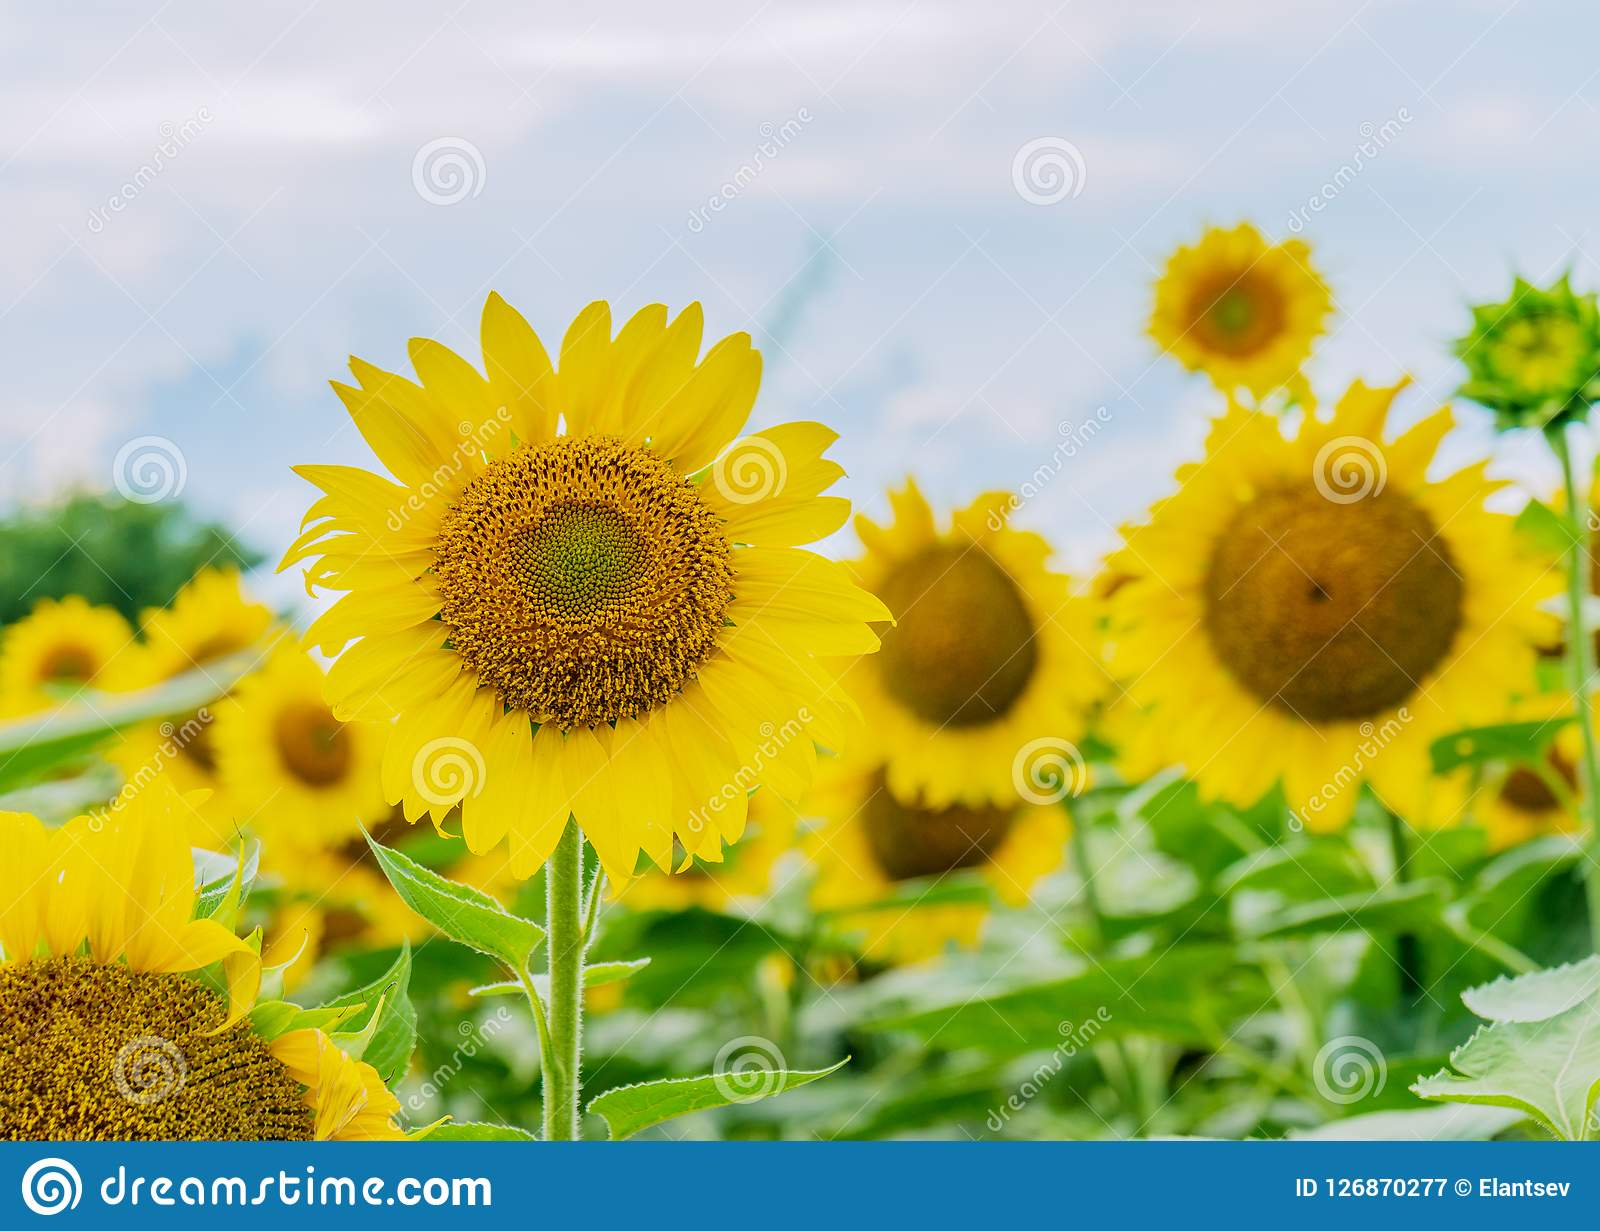 Beautiful Sunflowers In The Field Natural Background Stock Image